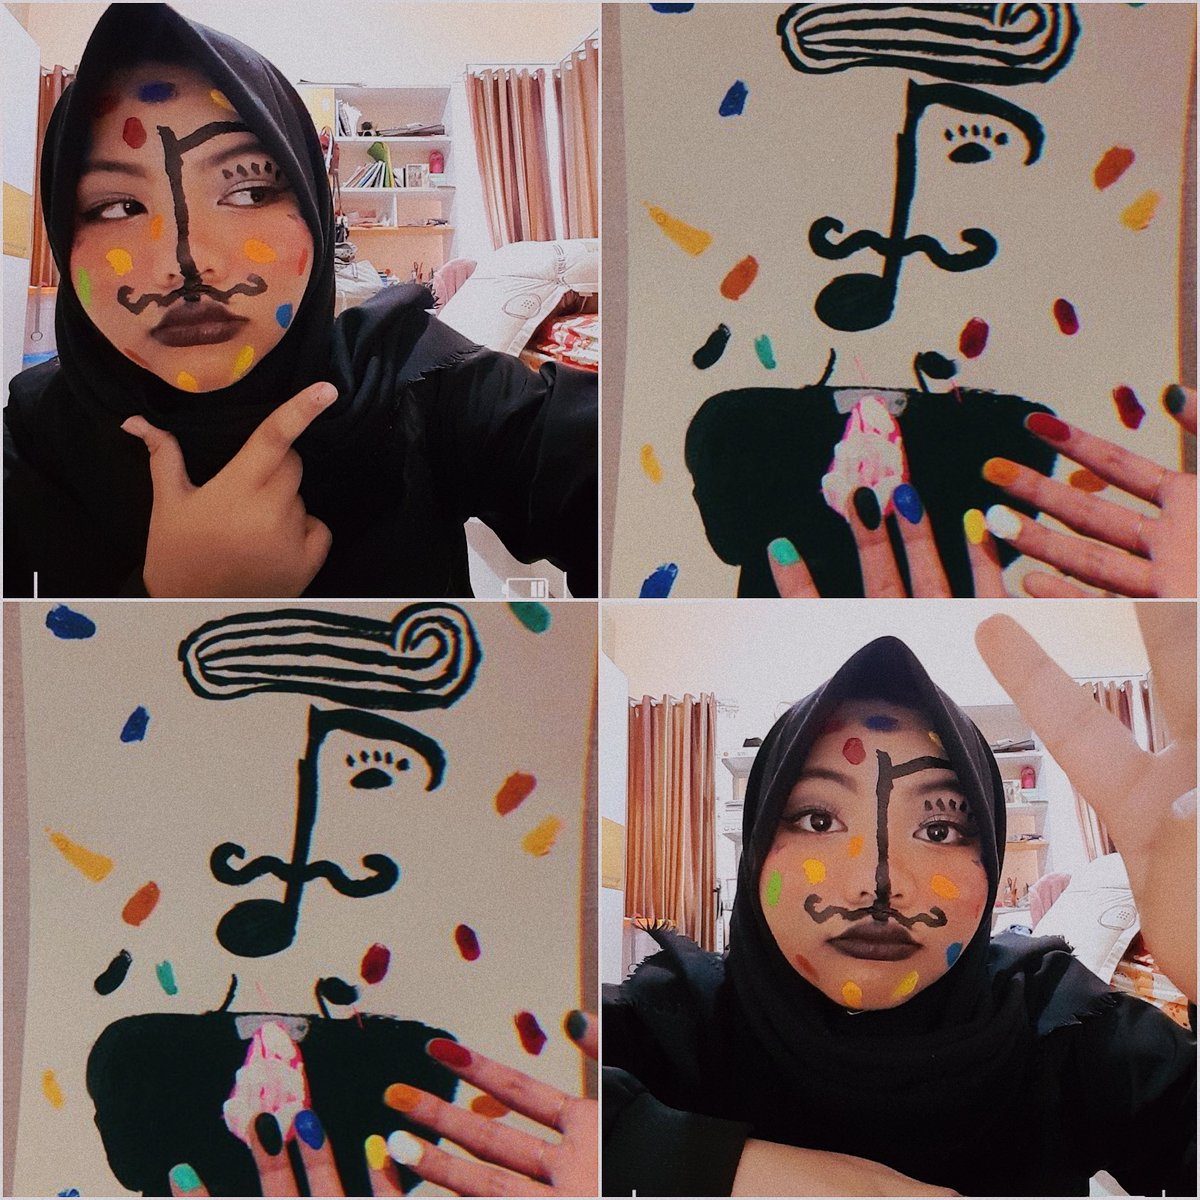 Had a little fun with Taehyung&#39;s painting today. Does this count as #ARMYSelcaDay ??  . . Literally ignored my now melted ice cream crepes to finish whatever this is please like it y&#39;all  <br>http://pic.twitter.com/egtXpb6xip